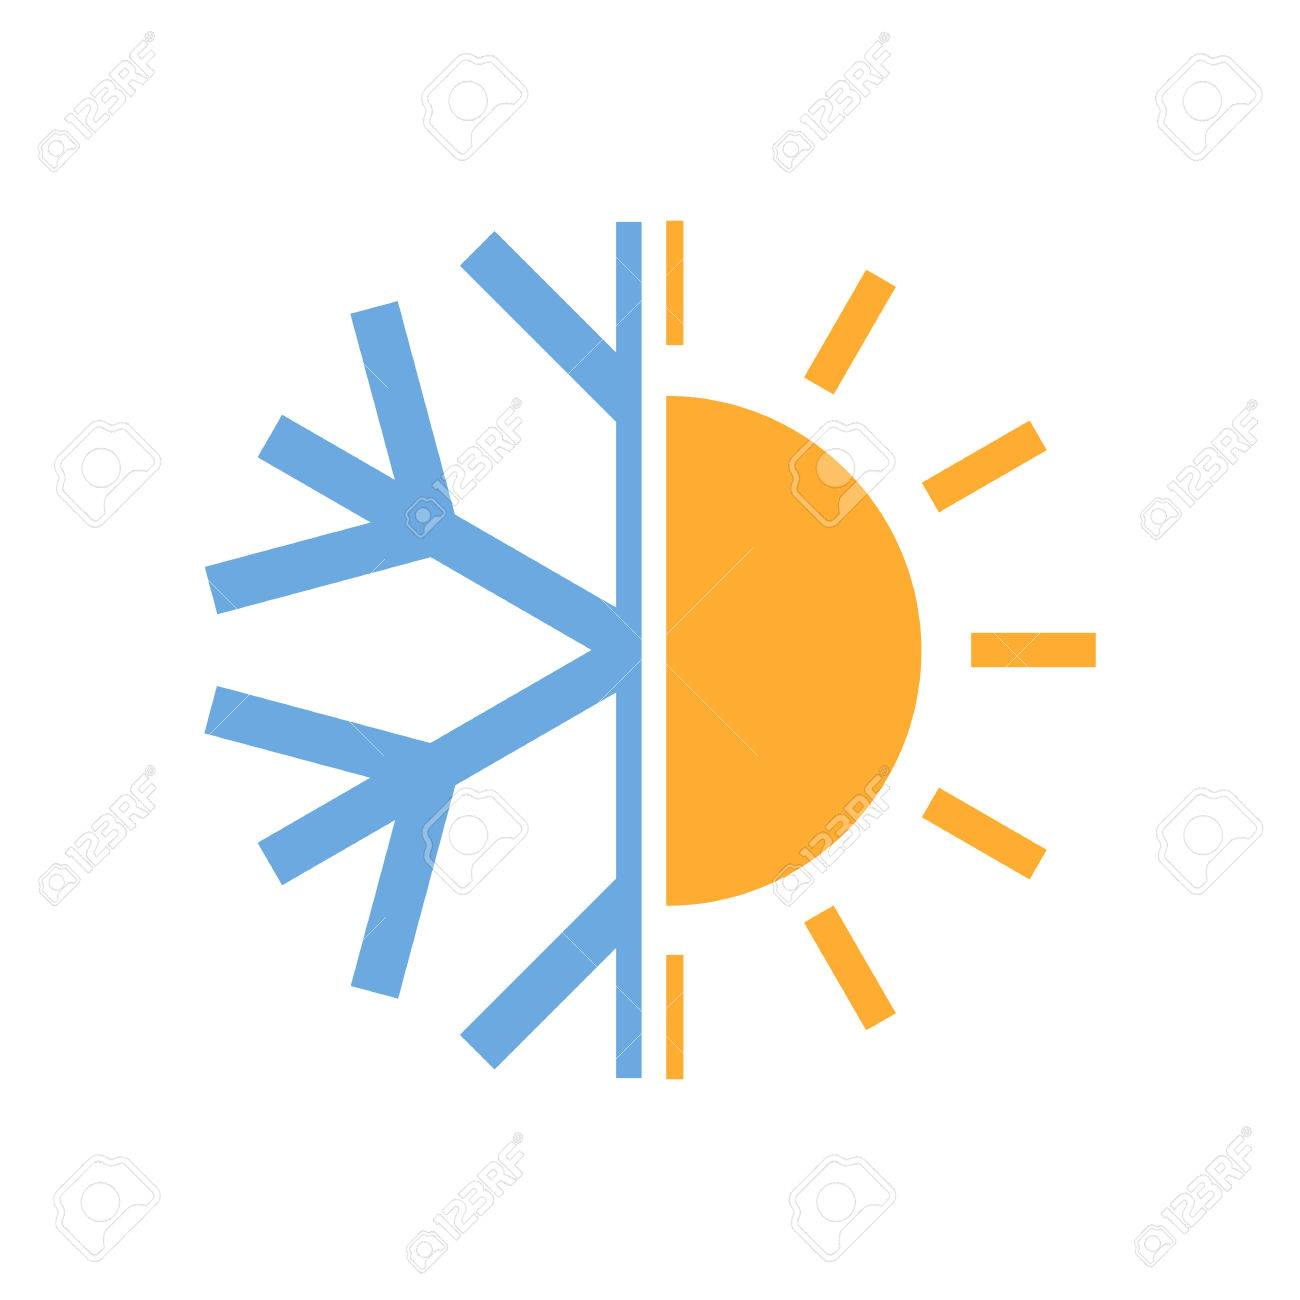 Sun and snowflake symbol of air conditioner. Vector illustration. Hot and cold icon. - 84404843